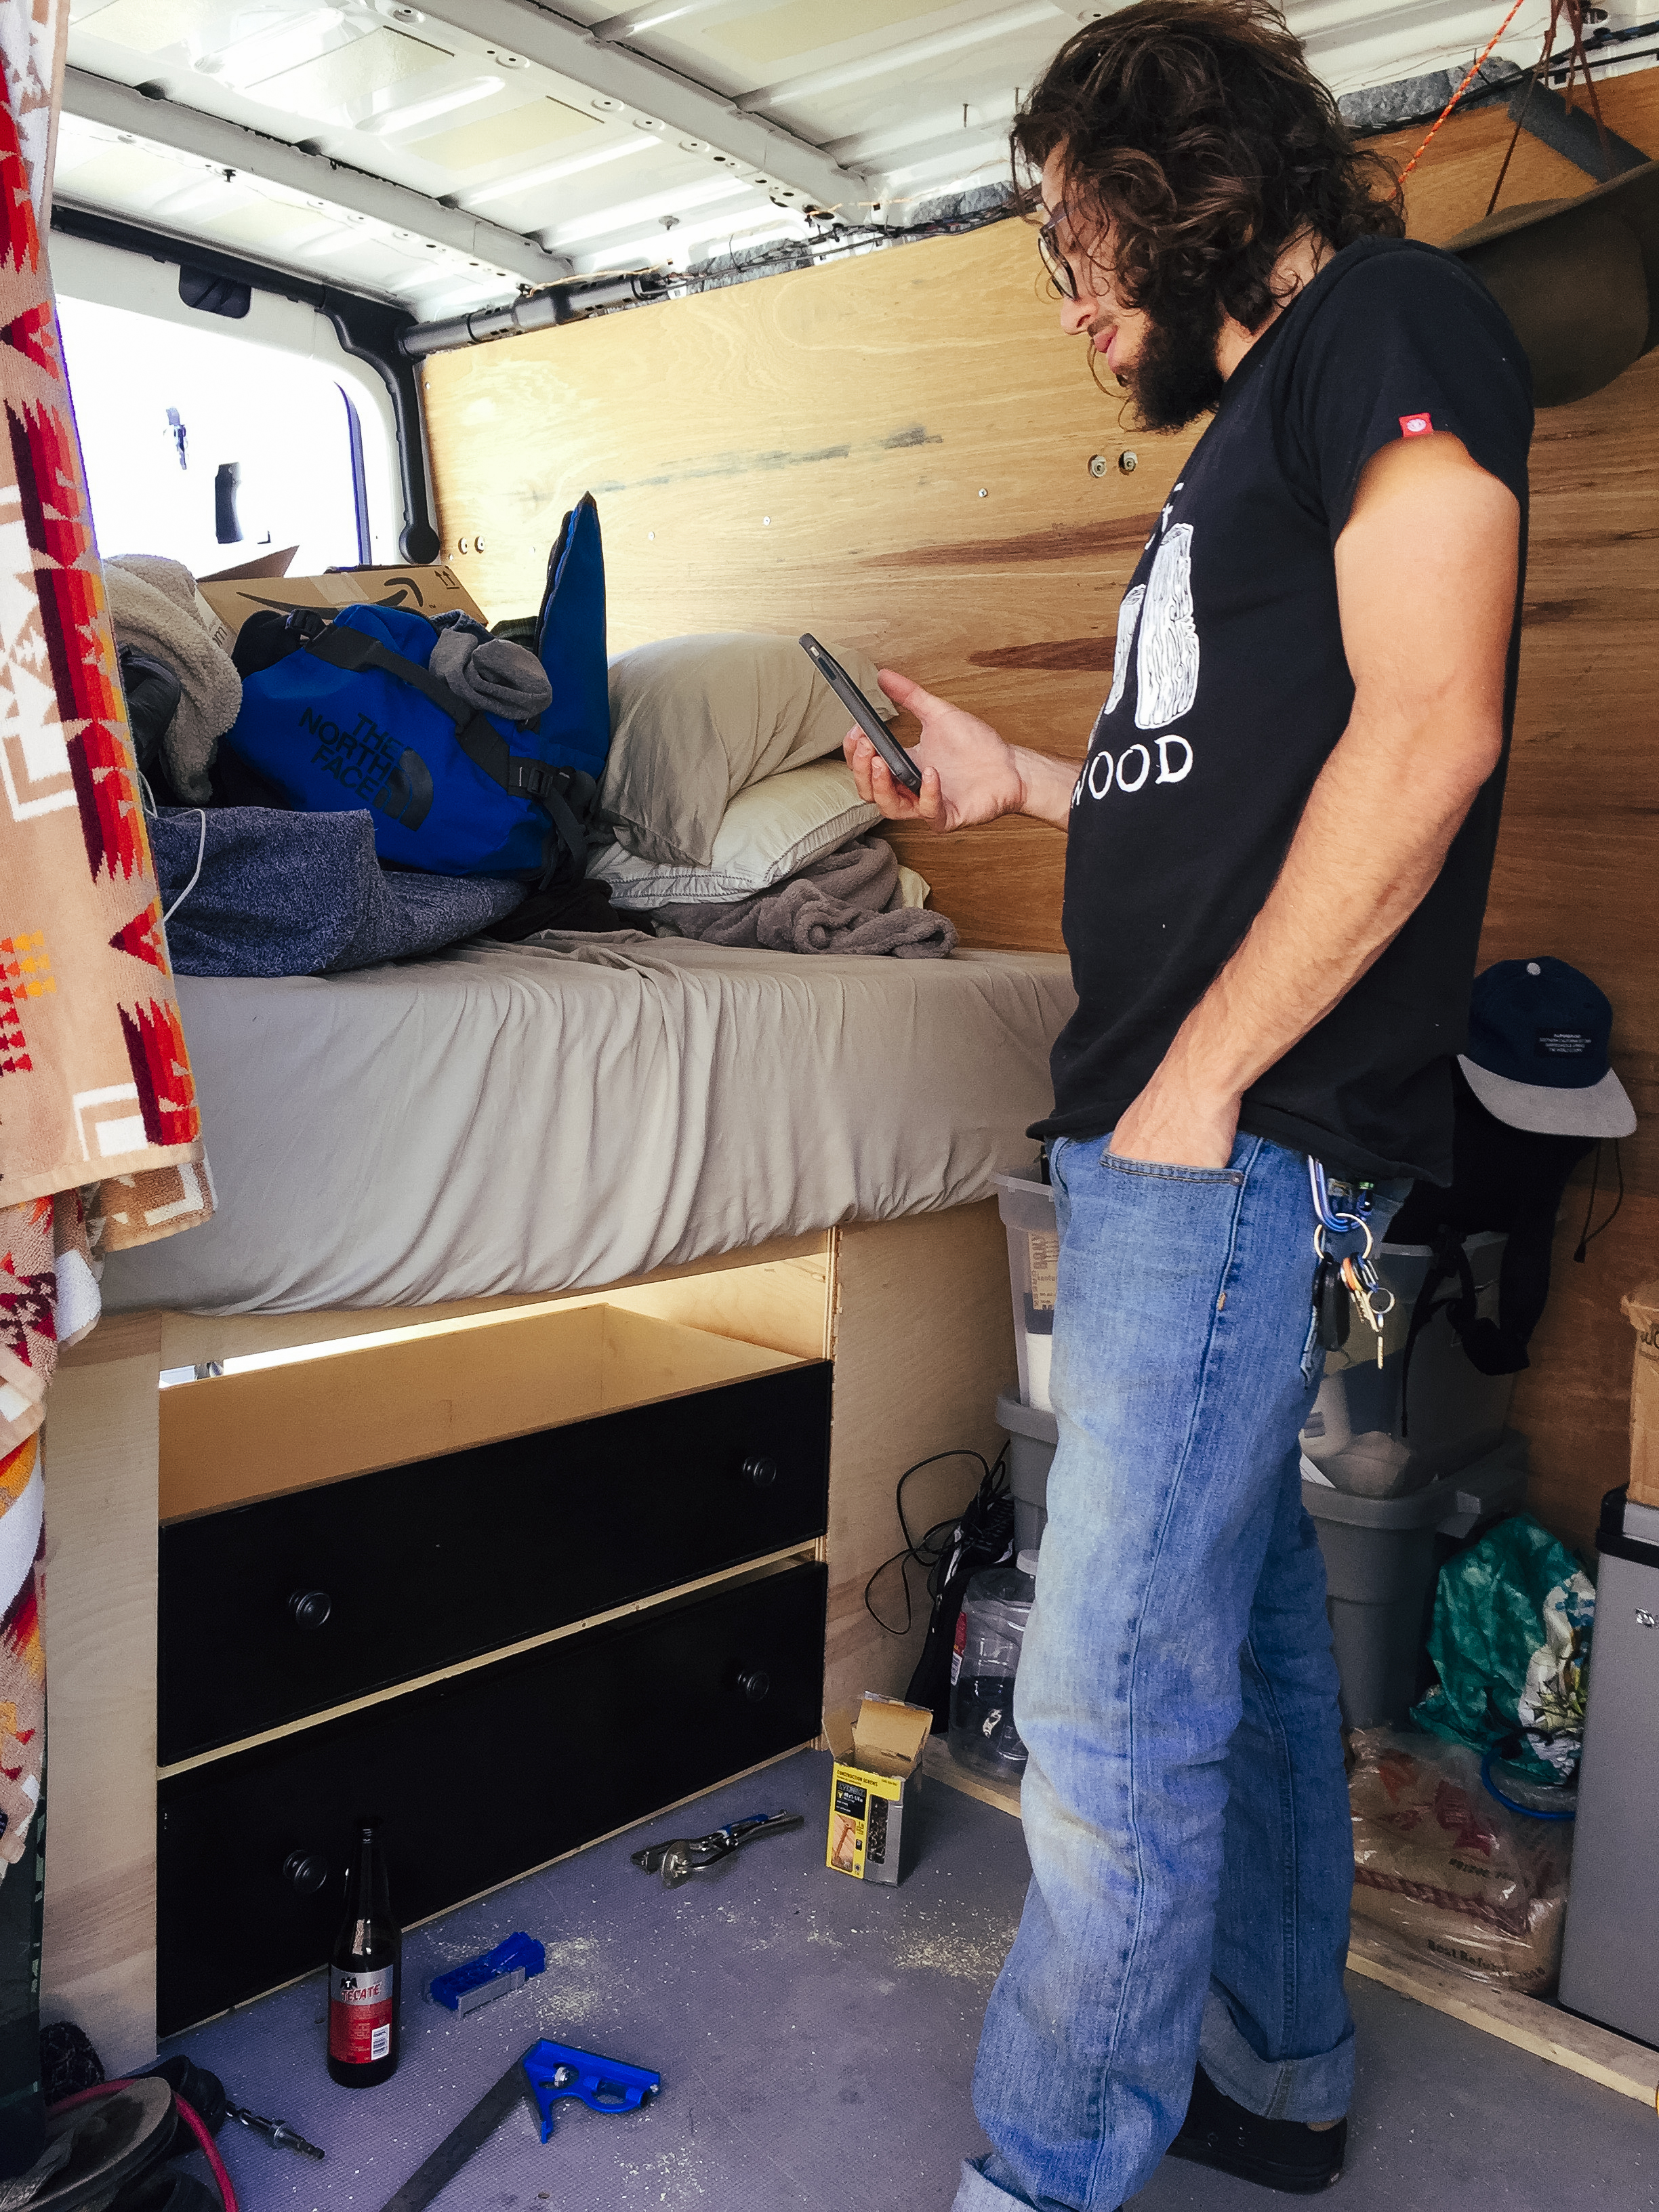 Here's Tom slacking. You will notice the space left above the drawers for the table that will slide out and be placed elsewhere in the van.